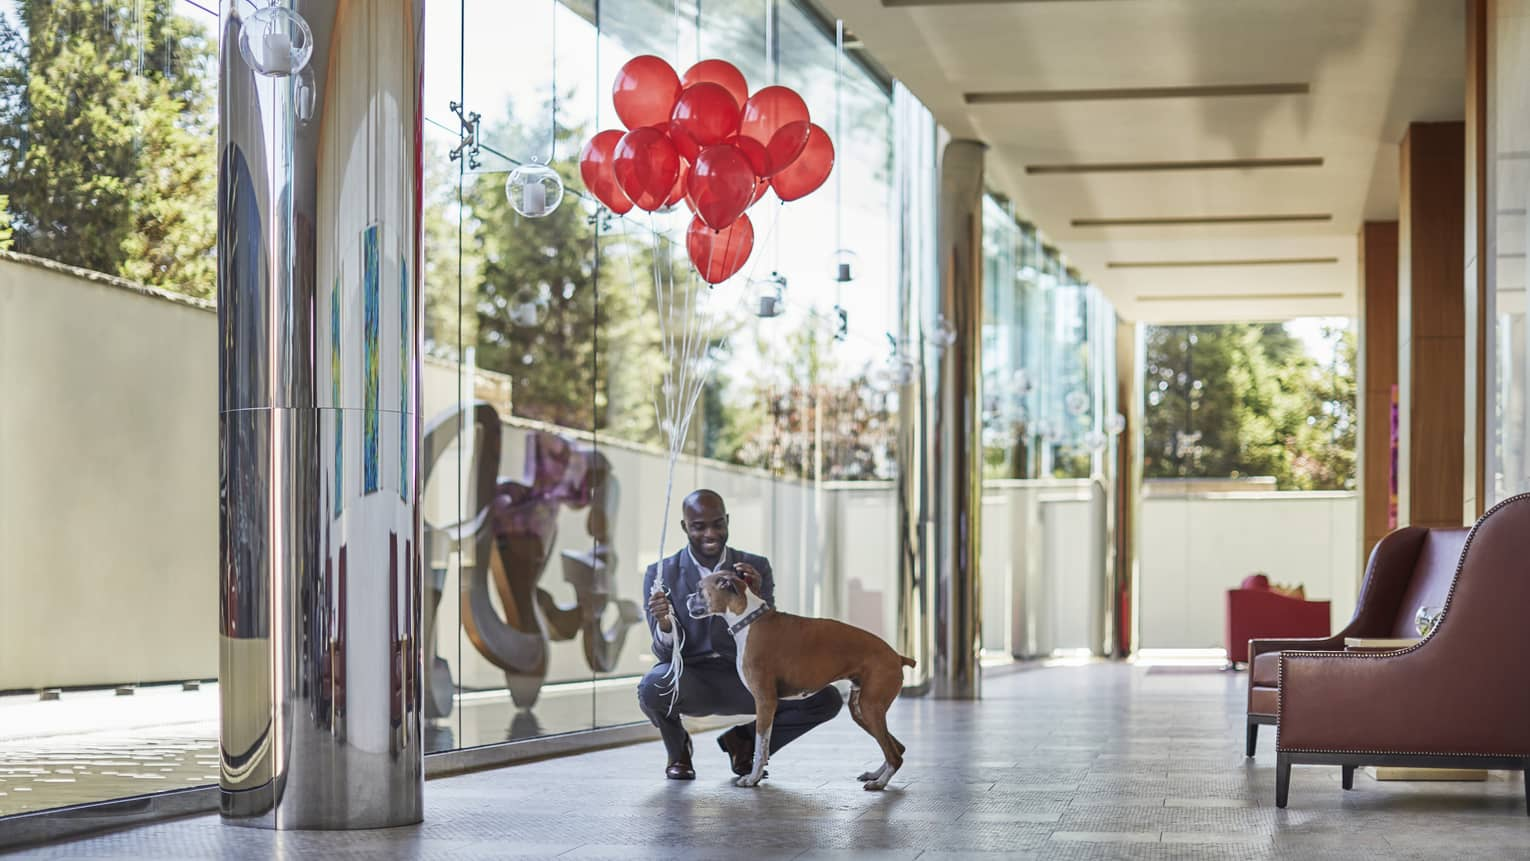 Man in suit holding bunch of red balloons kneels down to pet boxer dog in hotel hallway